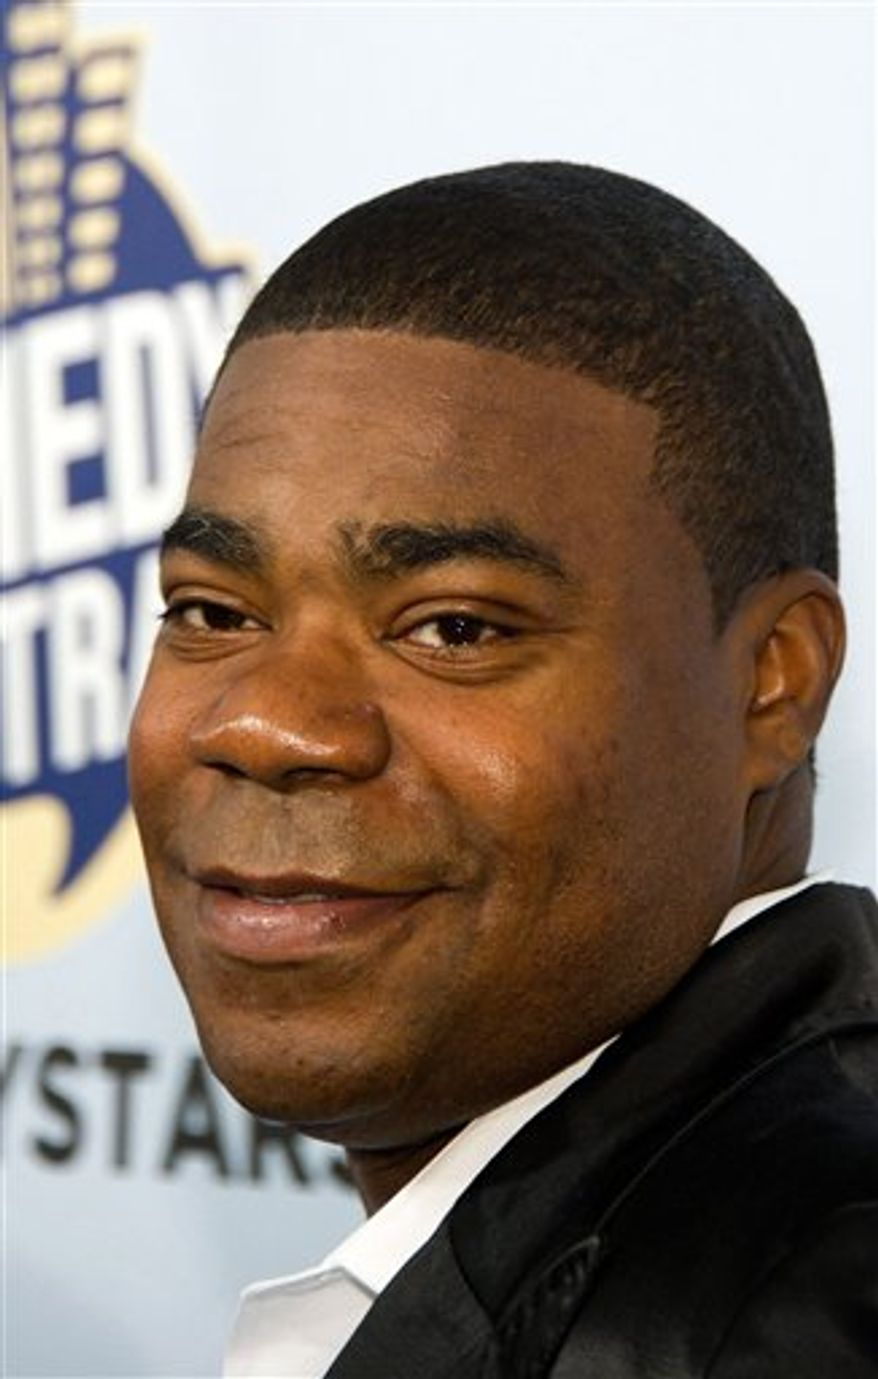 FILE - In this Oct. 2, 2010 file photo, Tracy Morgan attends Comedy Central's 'Night Of Too Many Stars: An Overbooked Concert For Autism Education' at the Beacon Theatre in New York. (AP Photo/Charles Sykes, File)